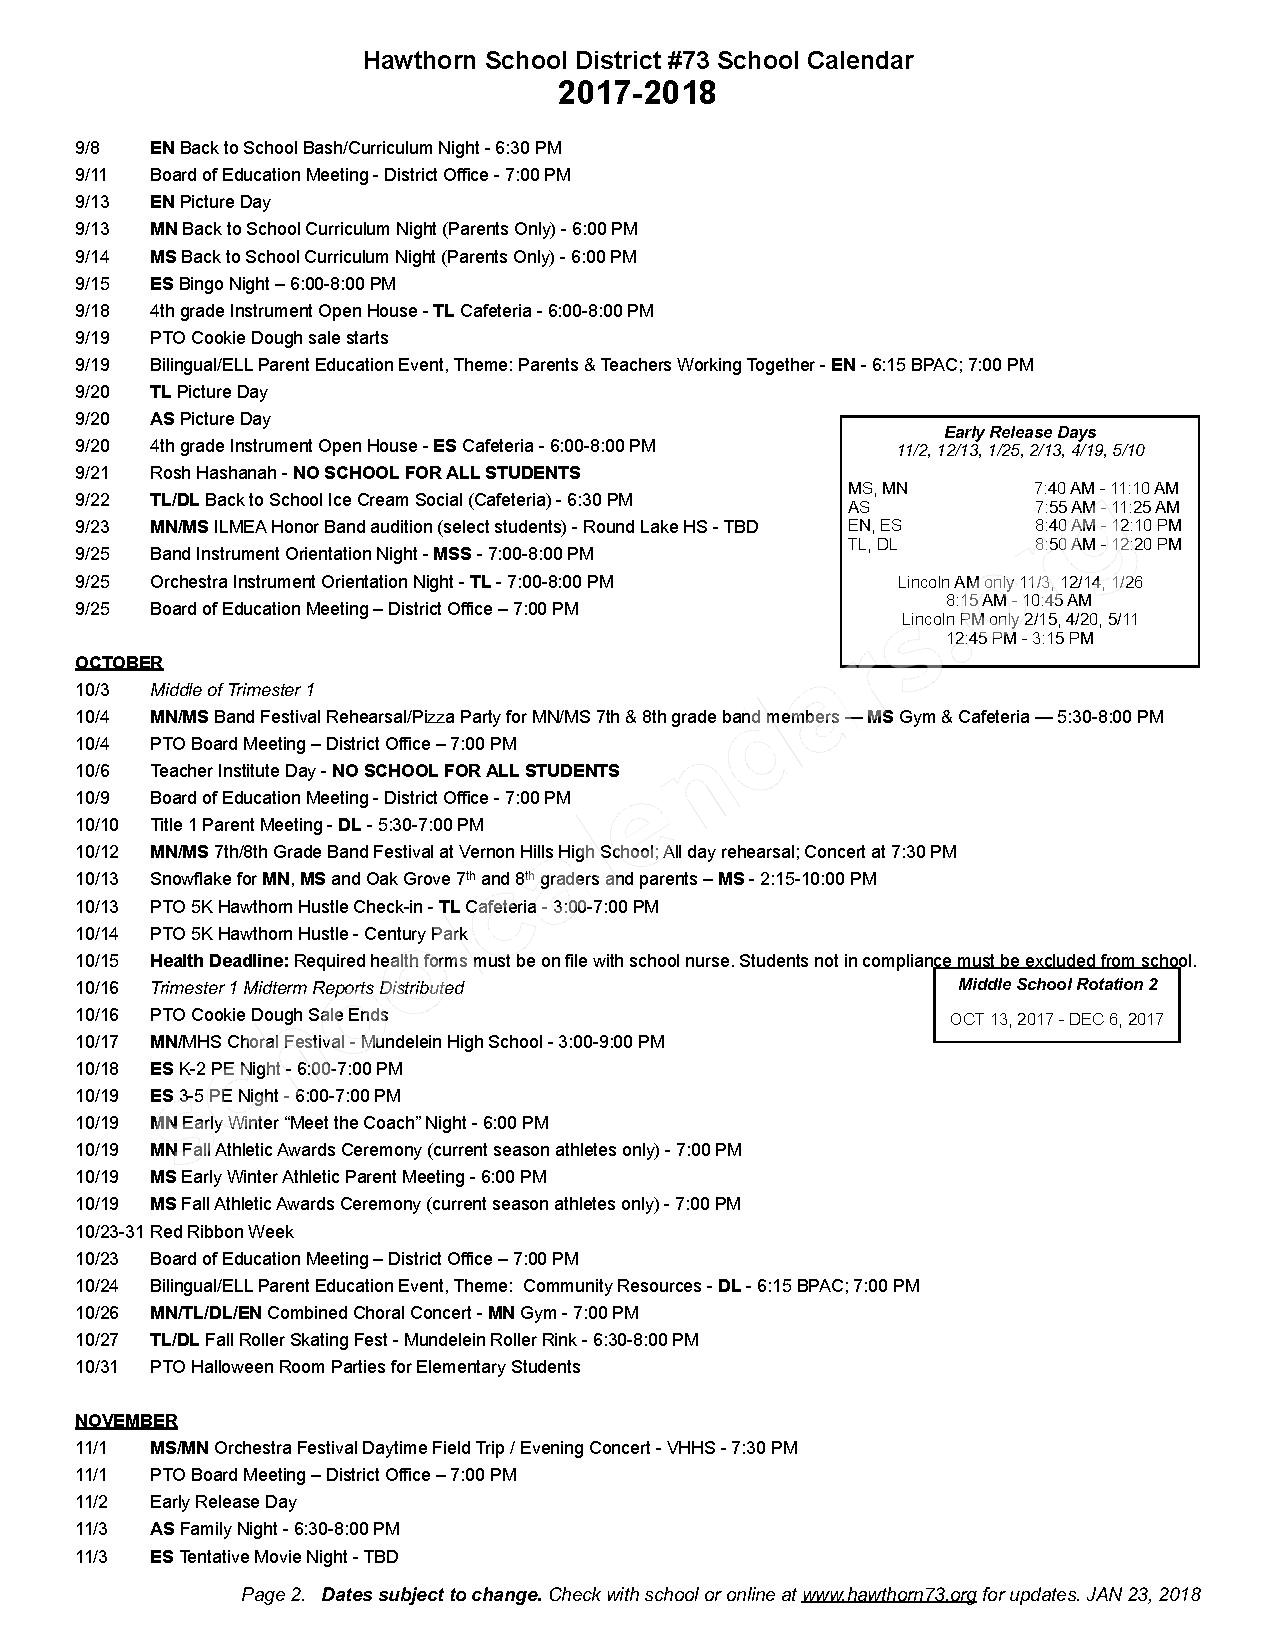 2017 - 2018 Detailed School Calendar – Hawthorn School District 73 – page 2